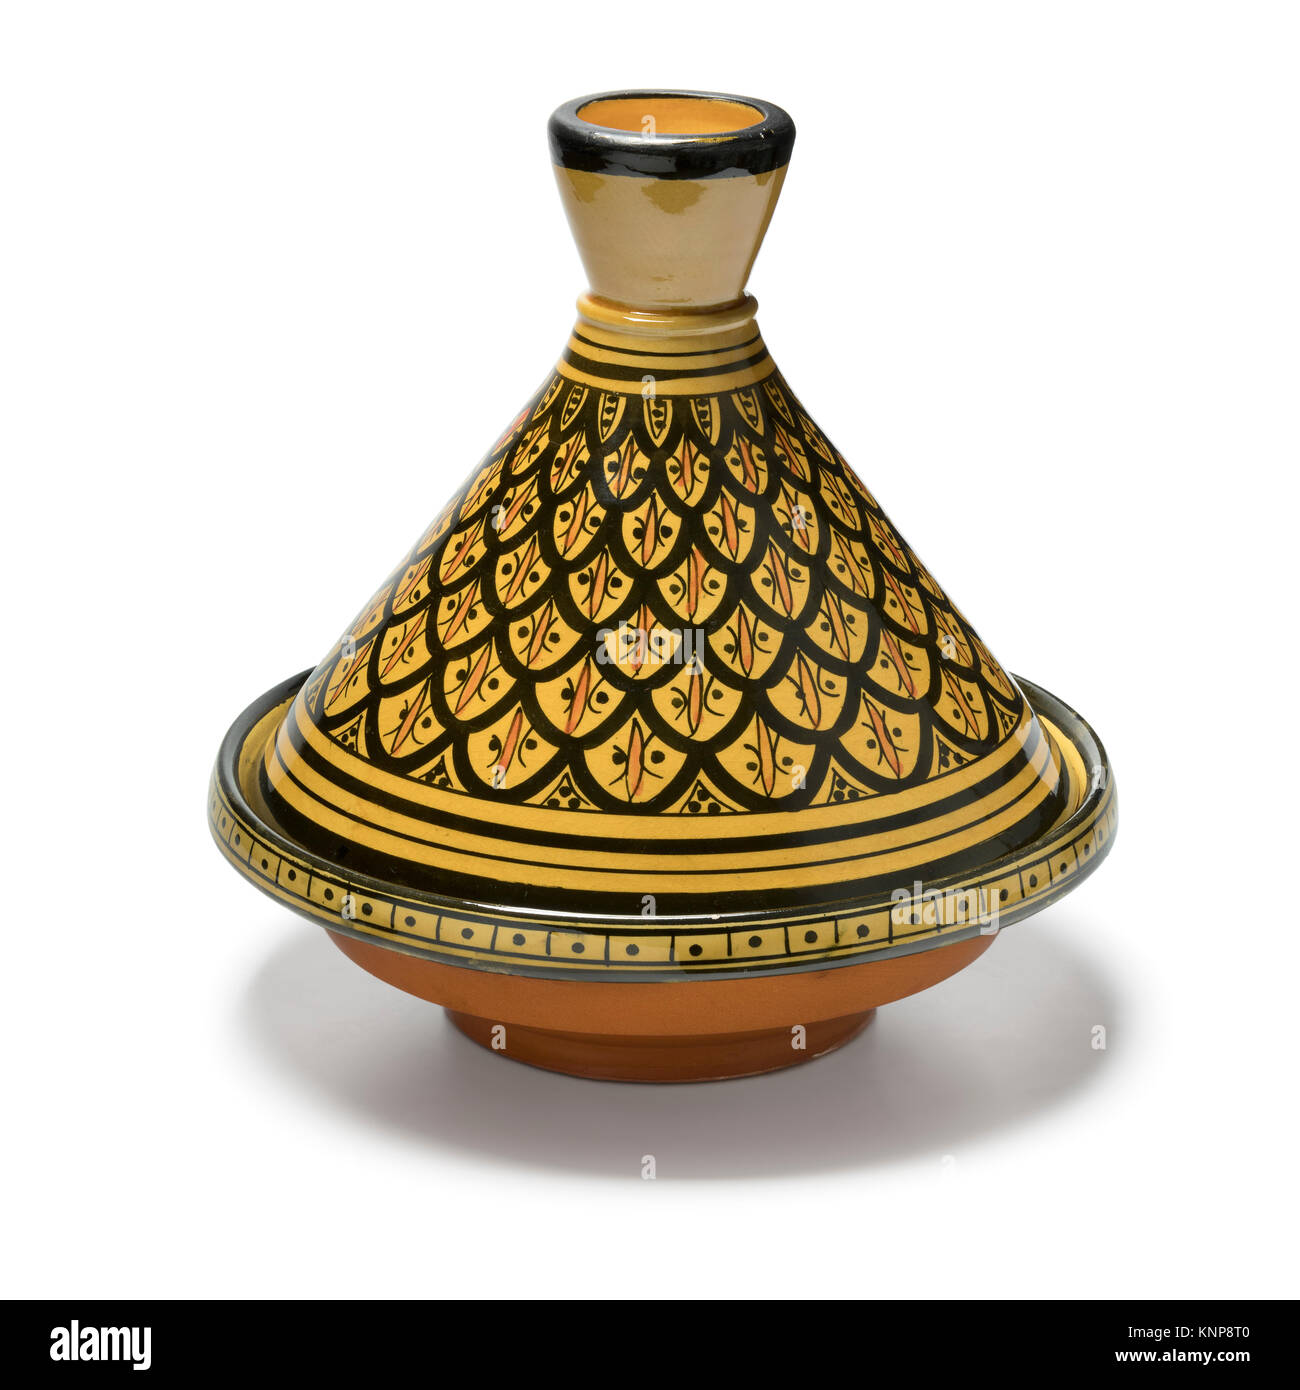 Moroccan handmade decorated tagine on white background - Stock Image